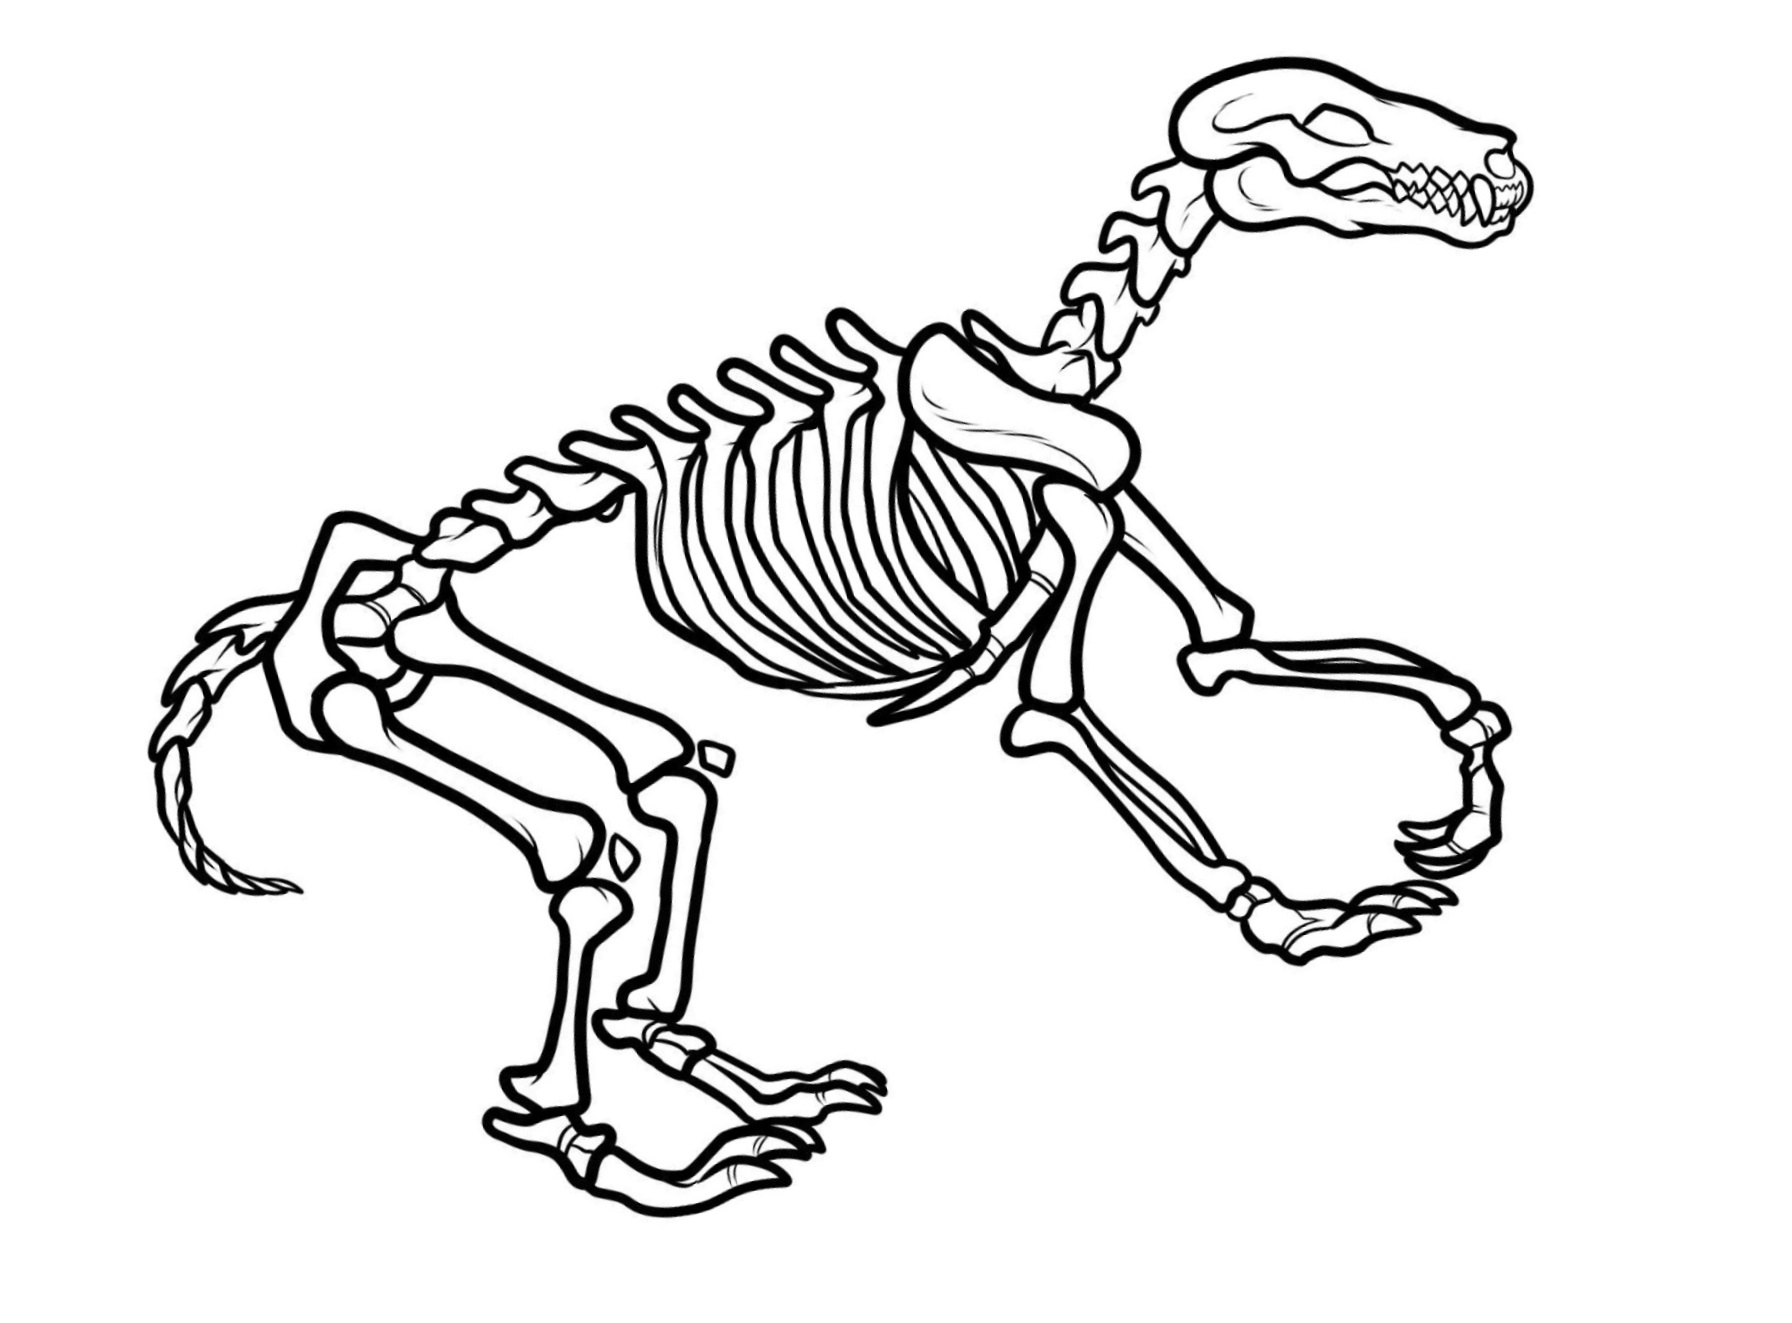 skletal fossil coloring pages-#12